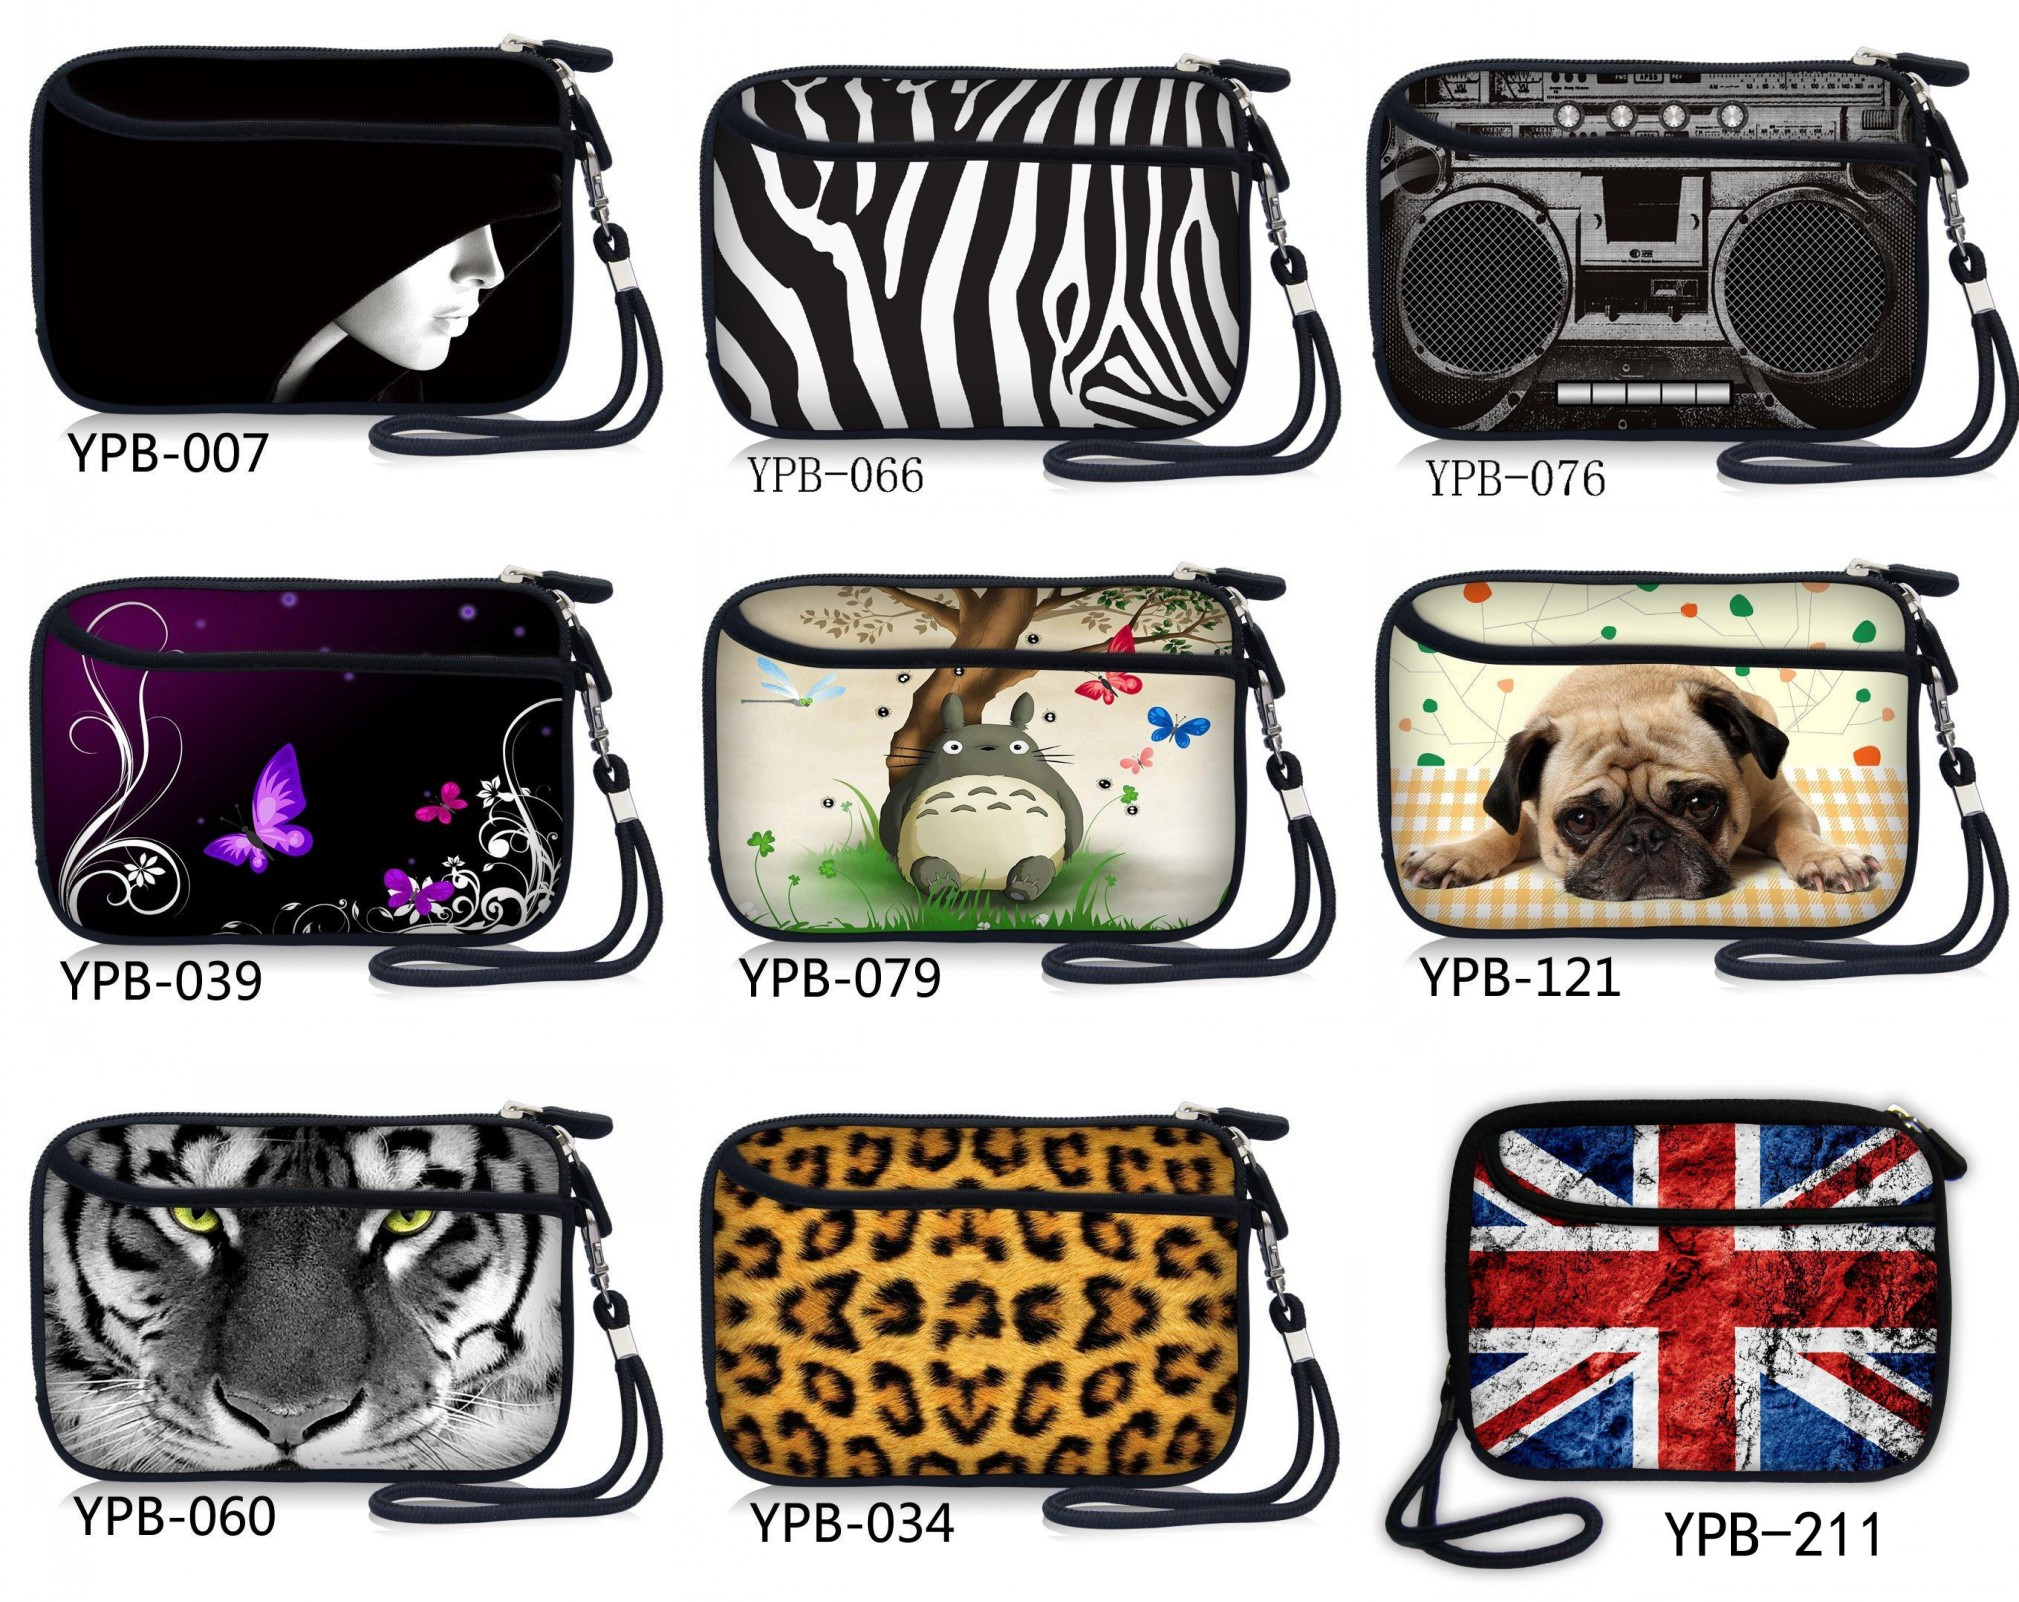 "Neoprene Hand Carry hard Disk Bag Case Cover Compartments for 2.5"" HDD Hard Disk,Mobile Power bank Bag w/ Pocket,Strap"